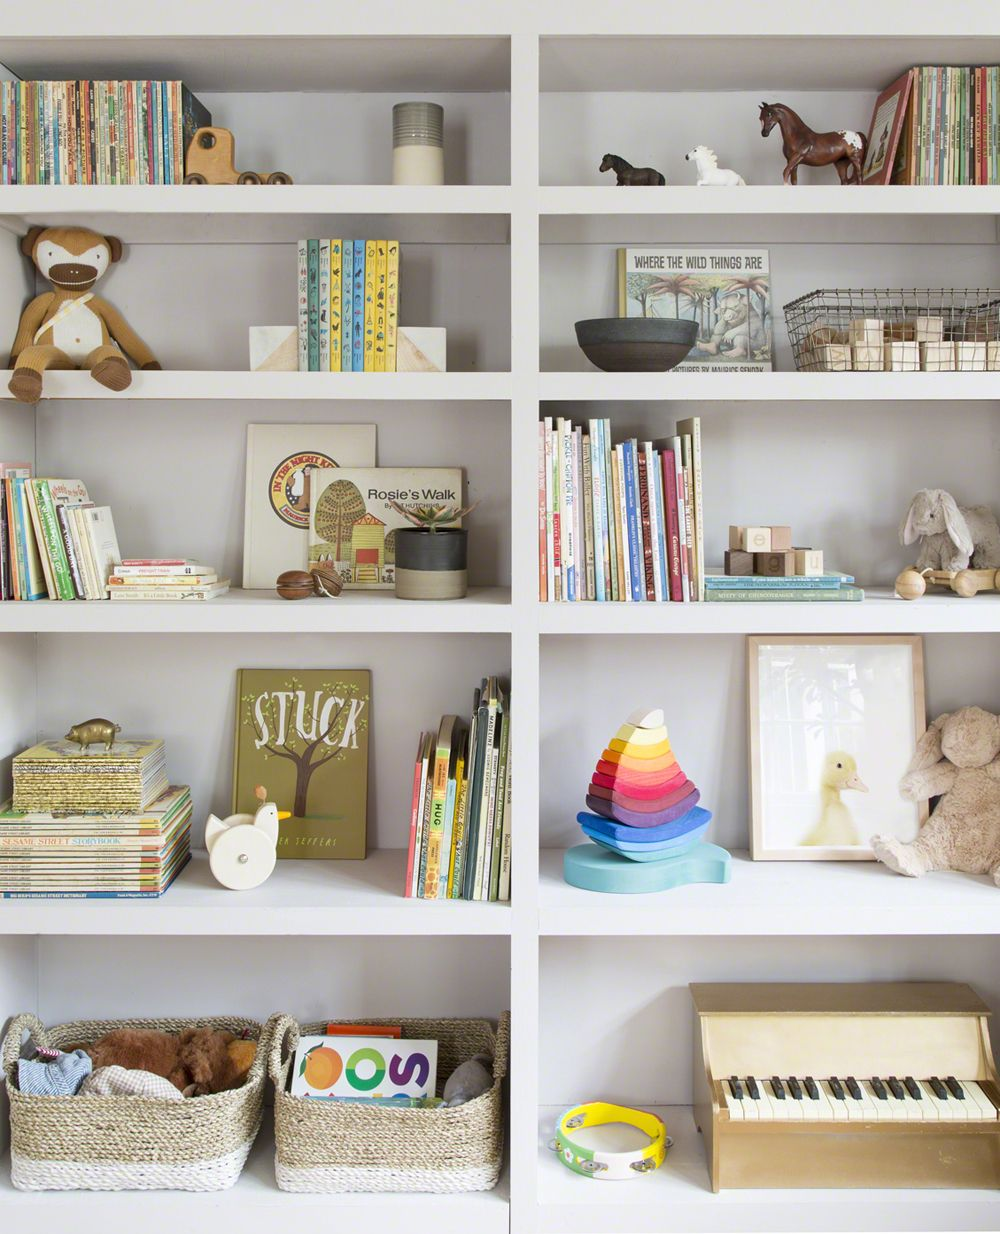 Introducing Baby Rhino in a Soothing California Nursery.   The Animal Print Shop Blog